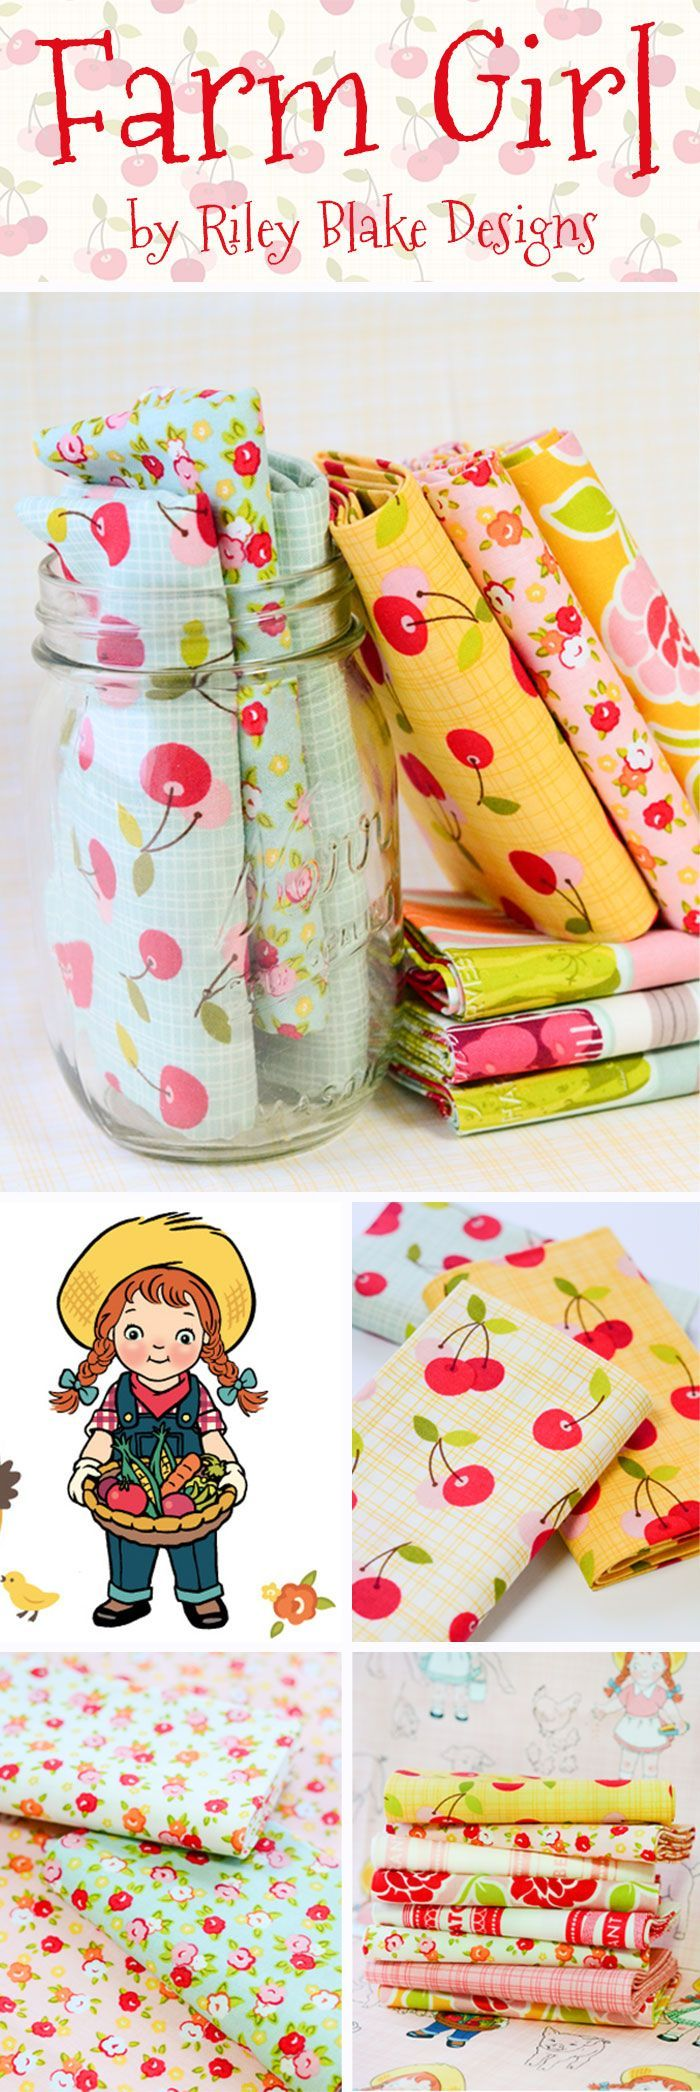 Farm Girl by October Afternoon - Riley Blake Create a charming, cozy, country throw or vintage quilt with the Farm Girl fabric from Riley Blake Designs. This collection features a range of adorable fabrics that detail canning labels, mason jars filled with vegetables, and the sweet farm girl herself. Incorporate a piece like the Rose Trellis, a cute and playful floral, with the Cherry Pie fabric.